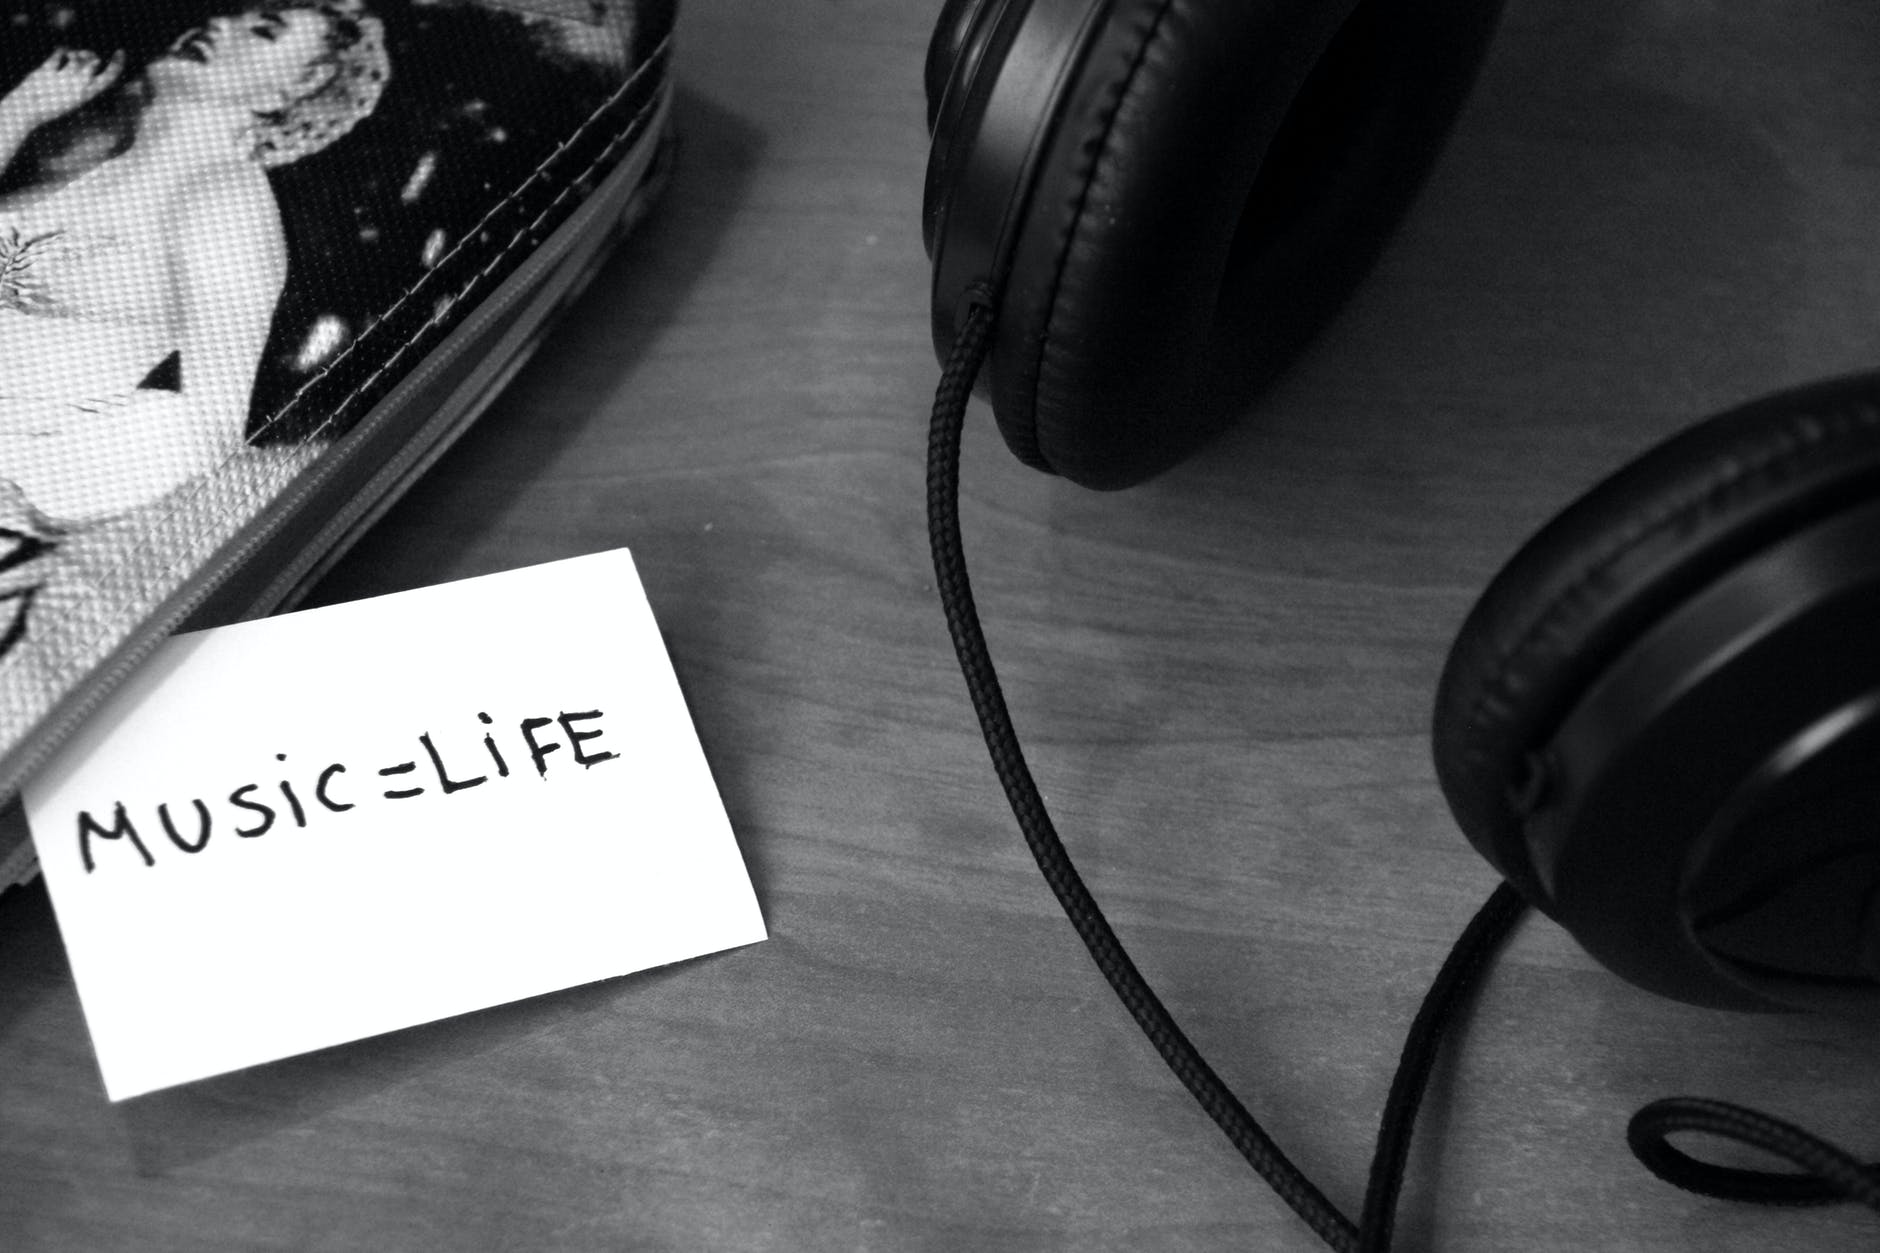 grayscale photo of printer paper with printed music life near headphones